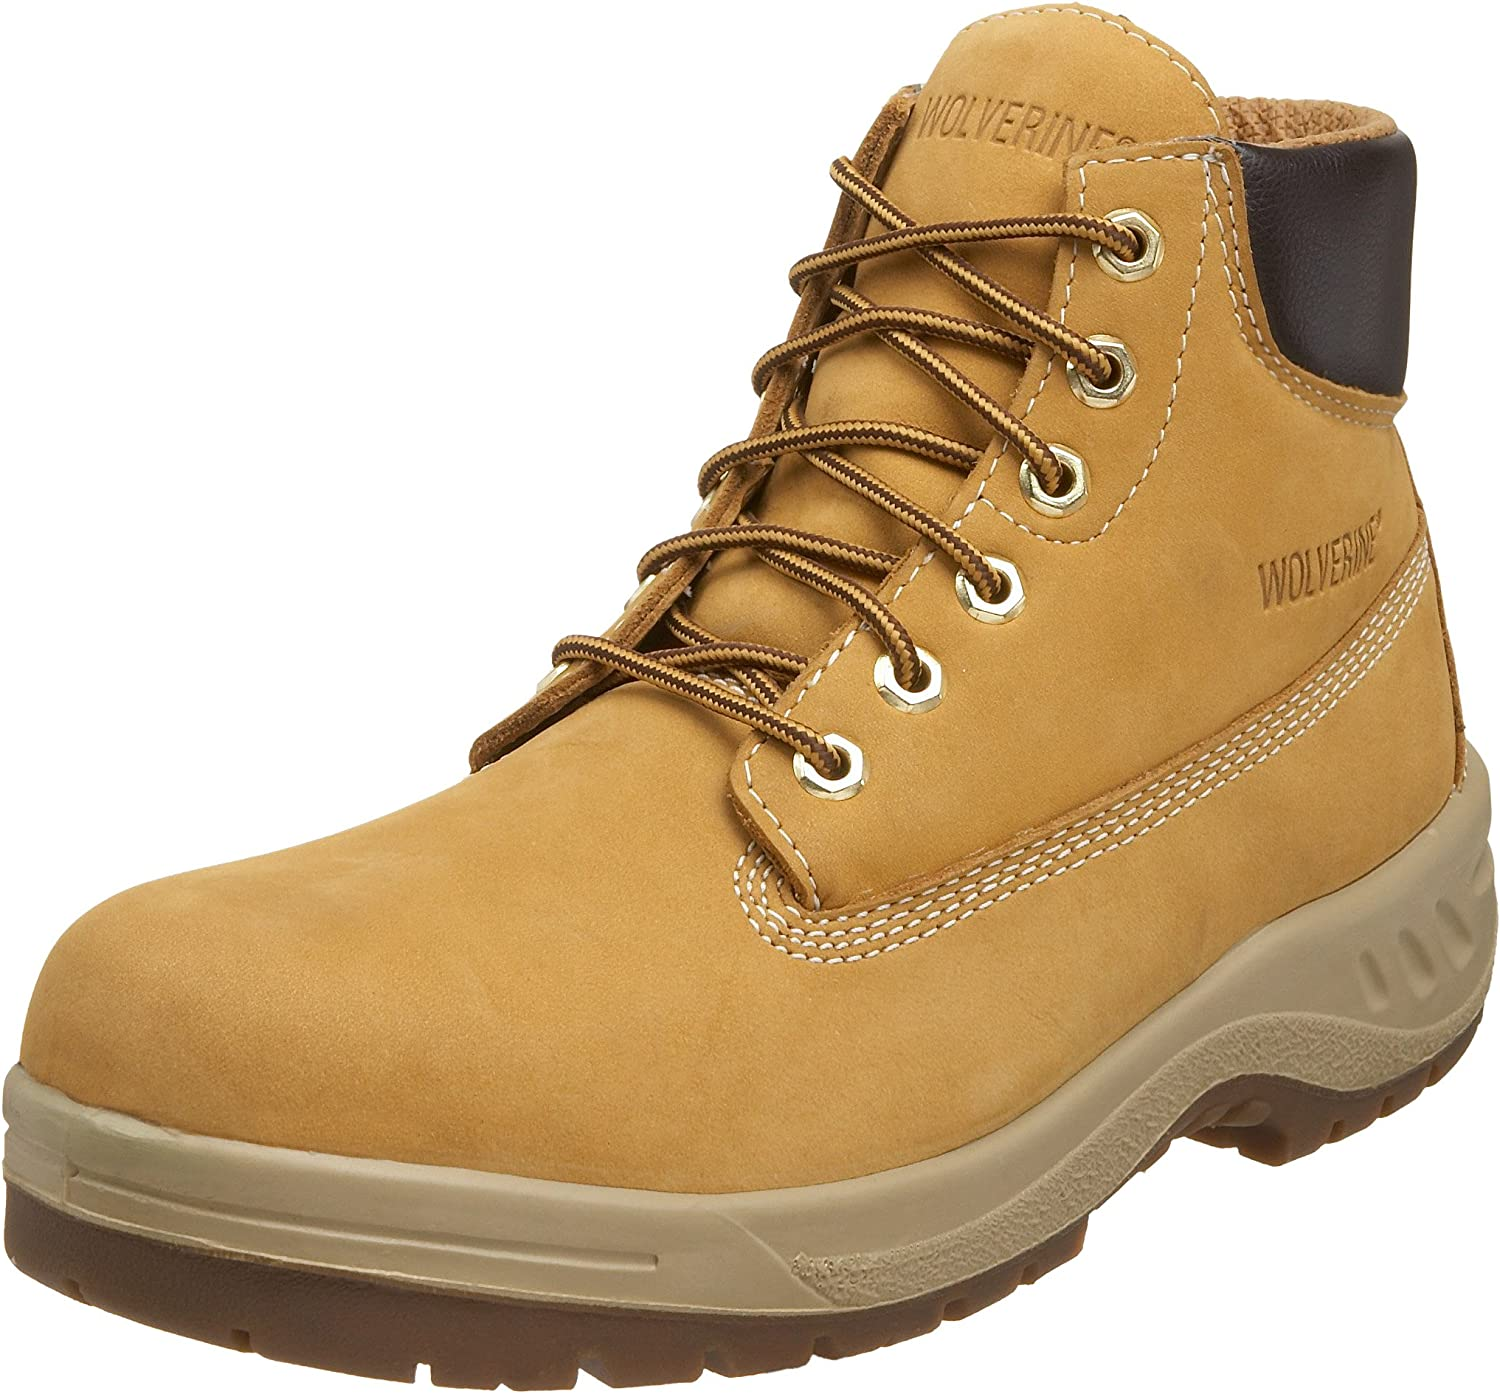 Wolverine Men's W01134 Wolverine Boot